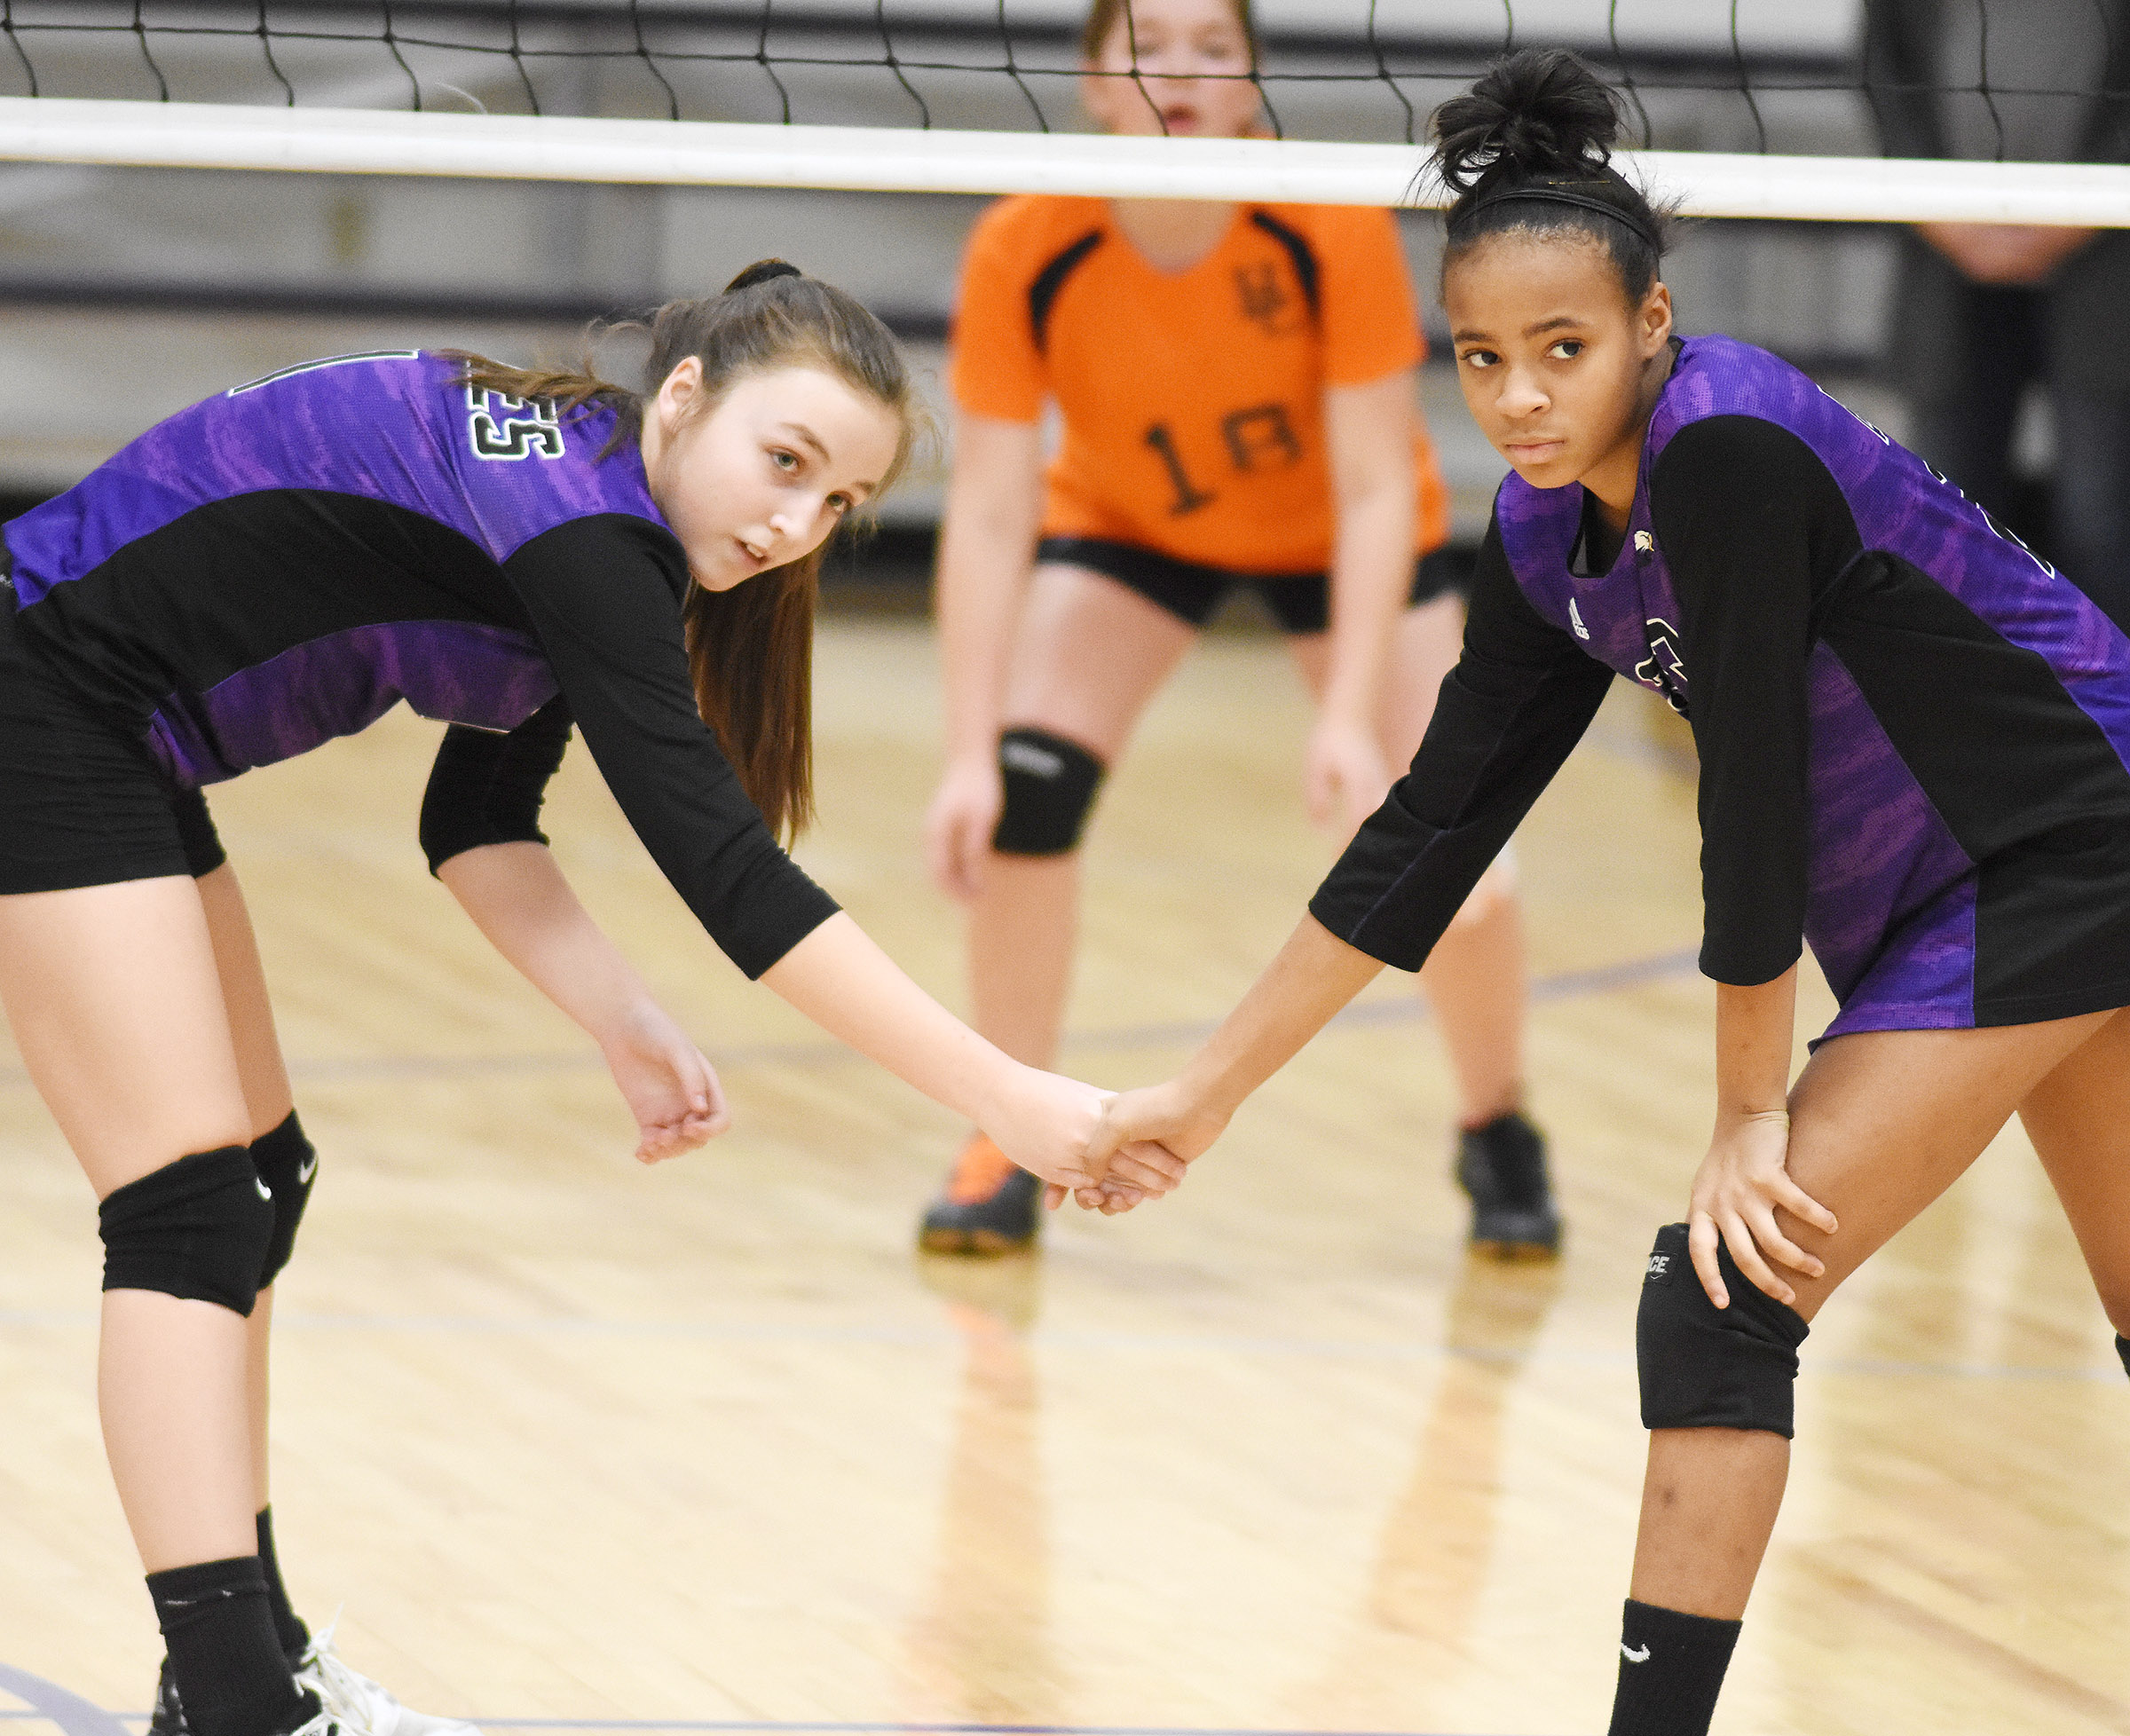 CMS eighth-graders Lainey Watson, at left, and Aundaya Coleman watch the serve.